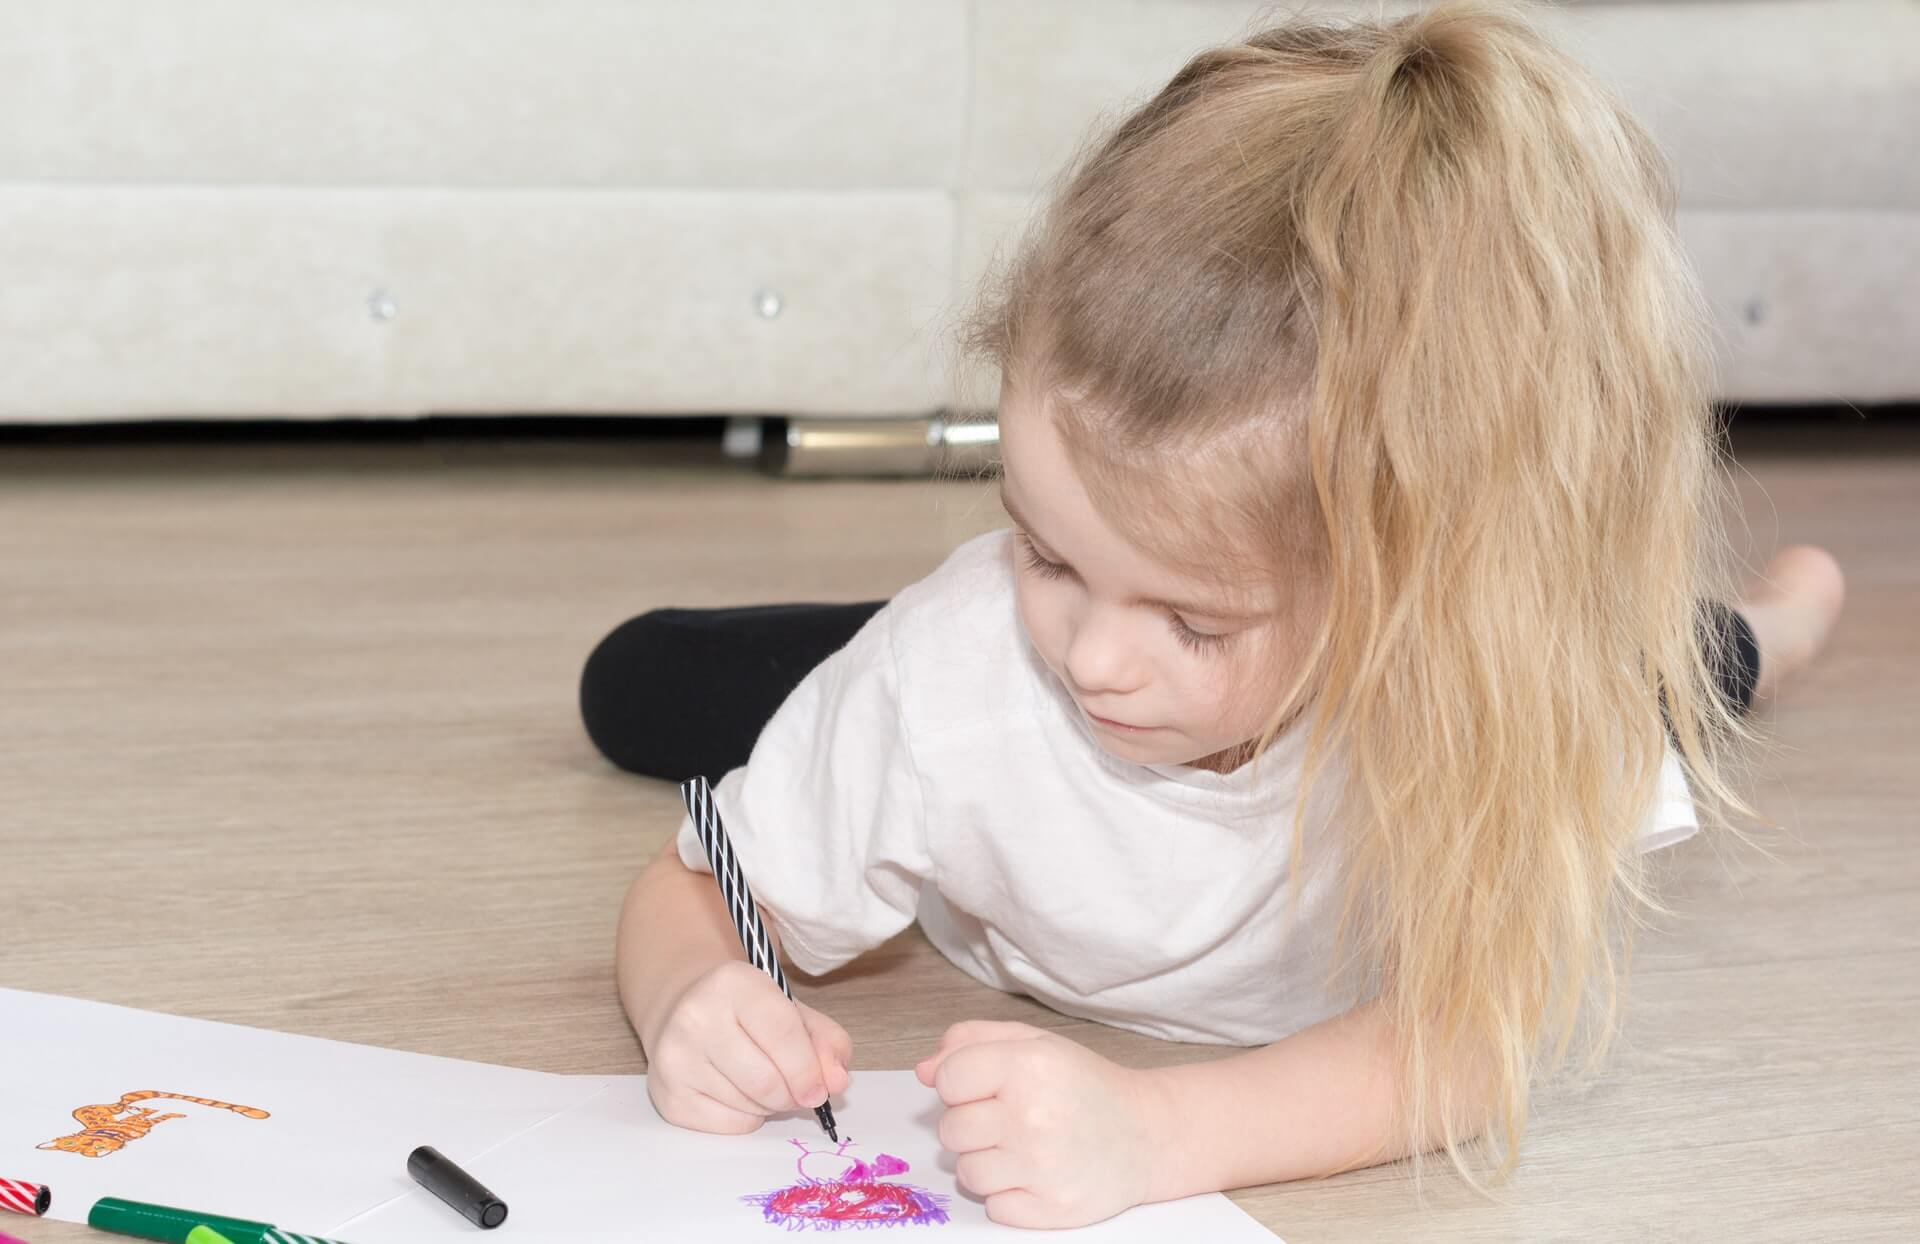 Picture of a young girl lying on a heated floor and drawing pictures